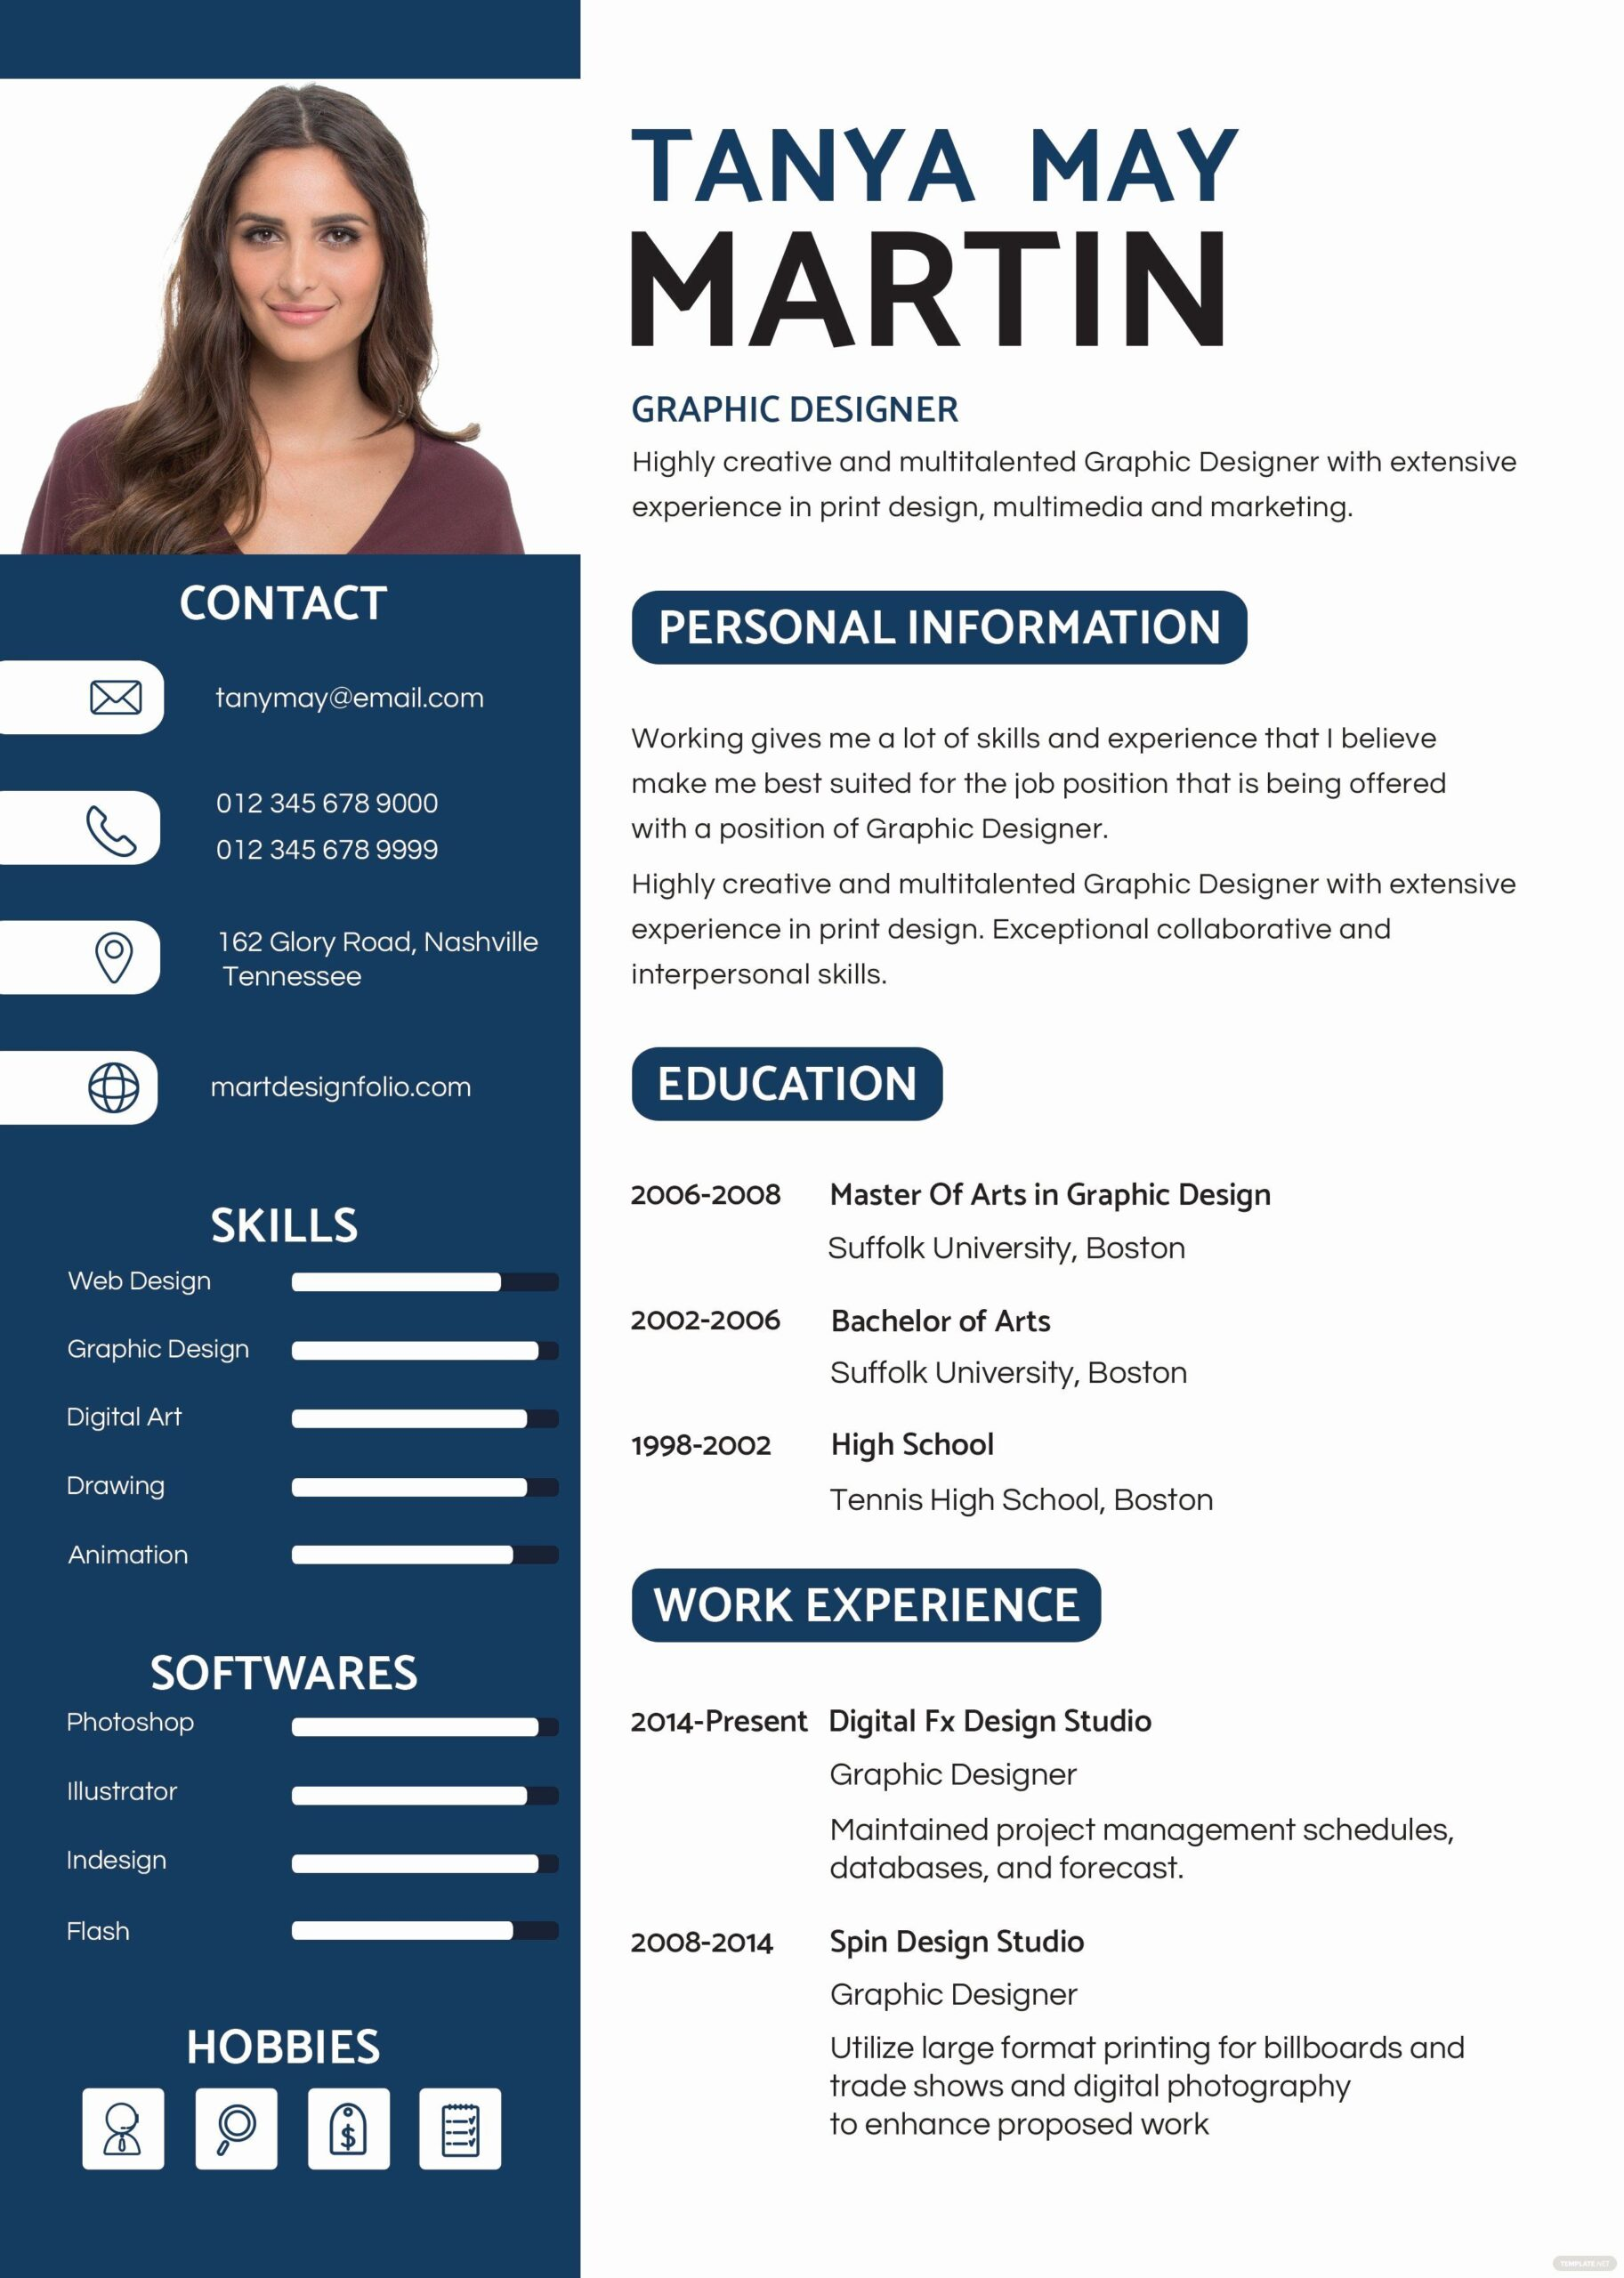 resume with template luxury free professional and cv in ms word desain kreatif graphic Resume Professional Graphic Design Resume